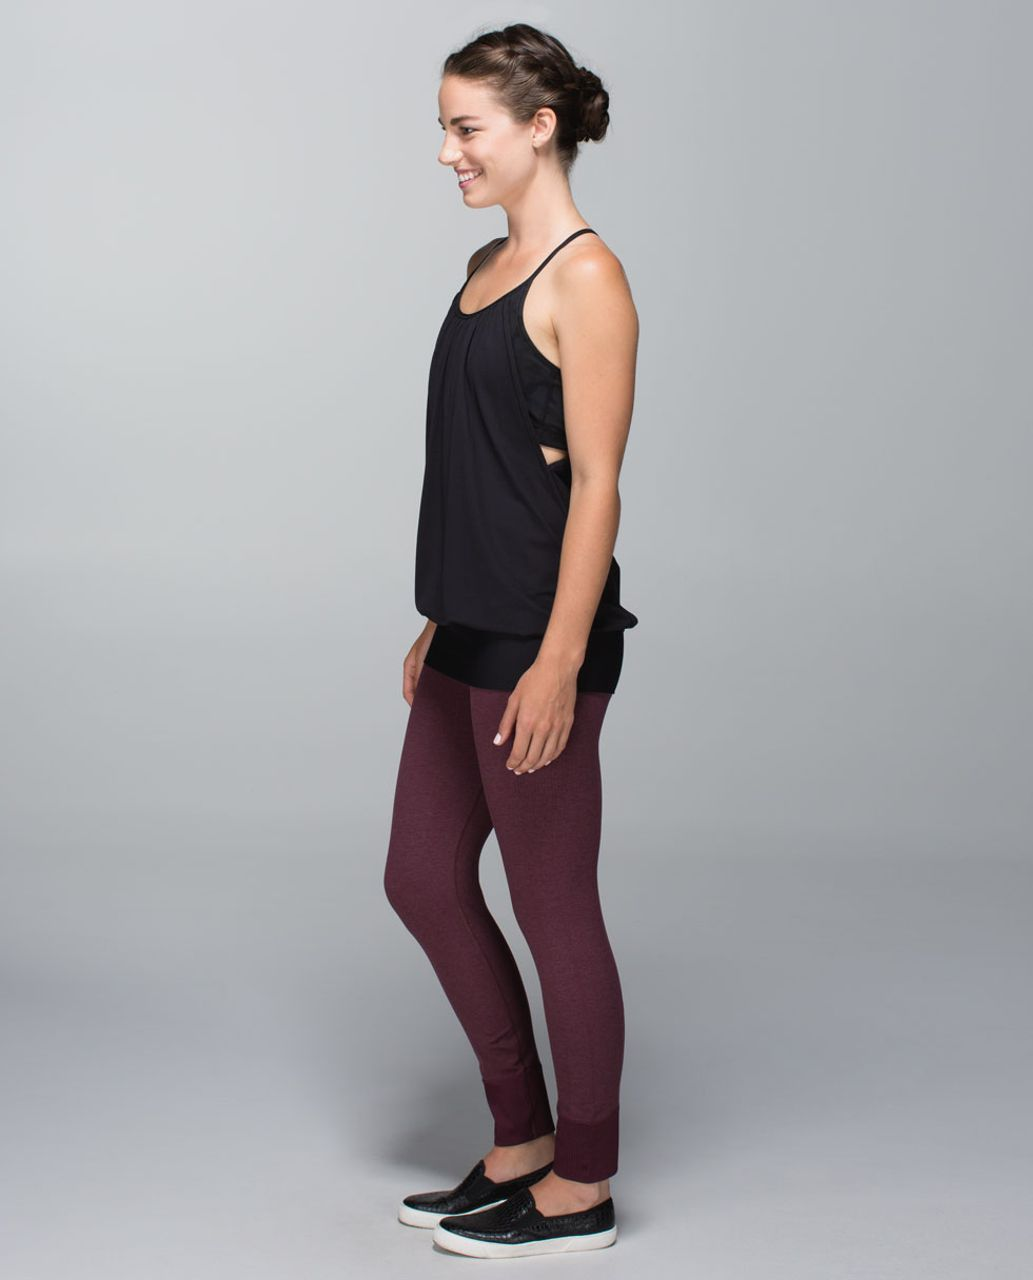 Lululemon Ebb To Street Pant - Heathered Bordeaux Drama